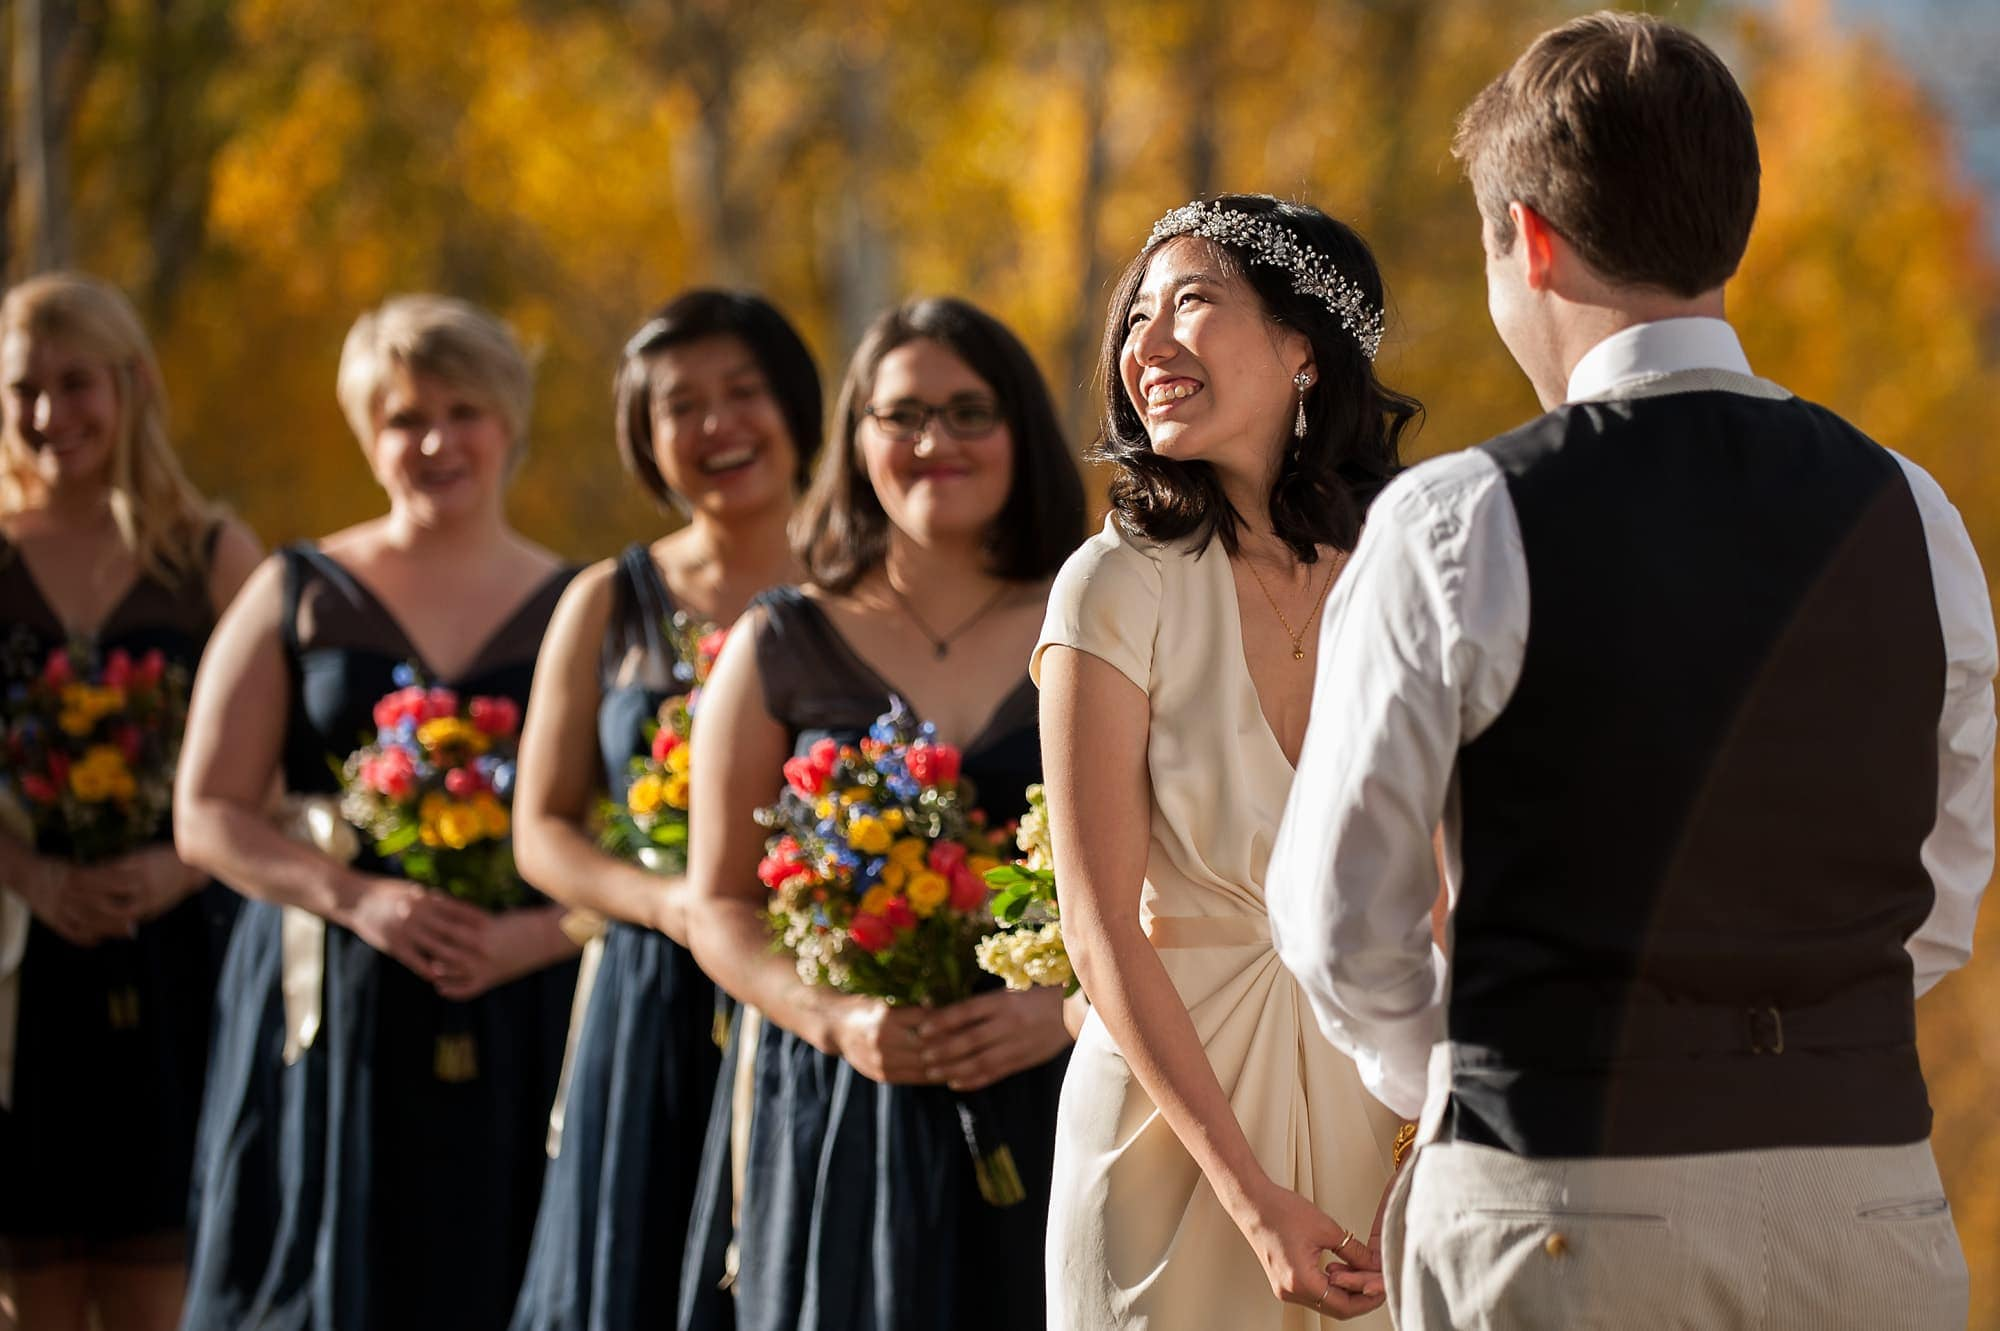 Allison smiles during her wedding to Walker at Lynn Britt Cabin in Snowmass Village near Aspen, Colorado.